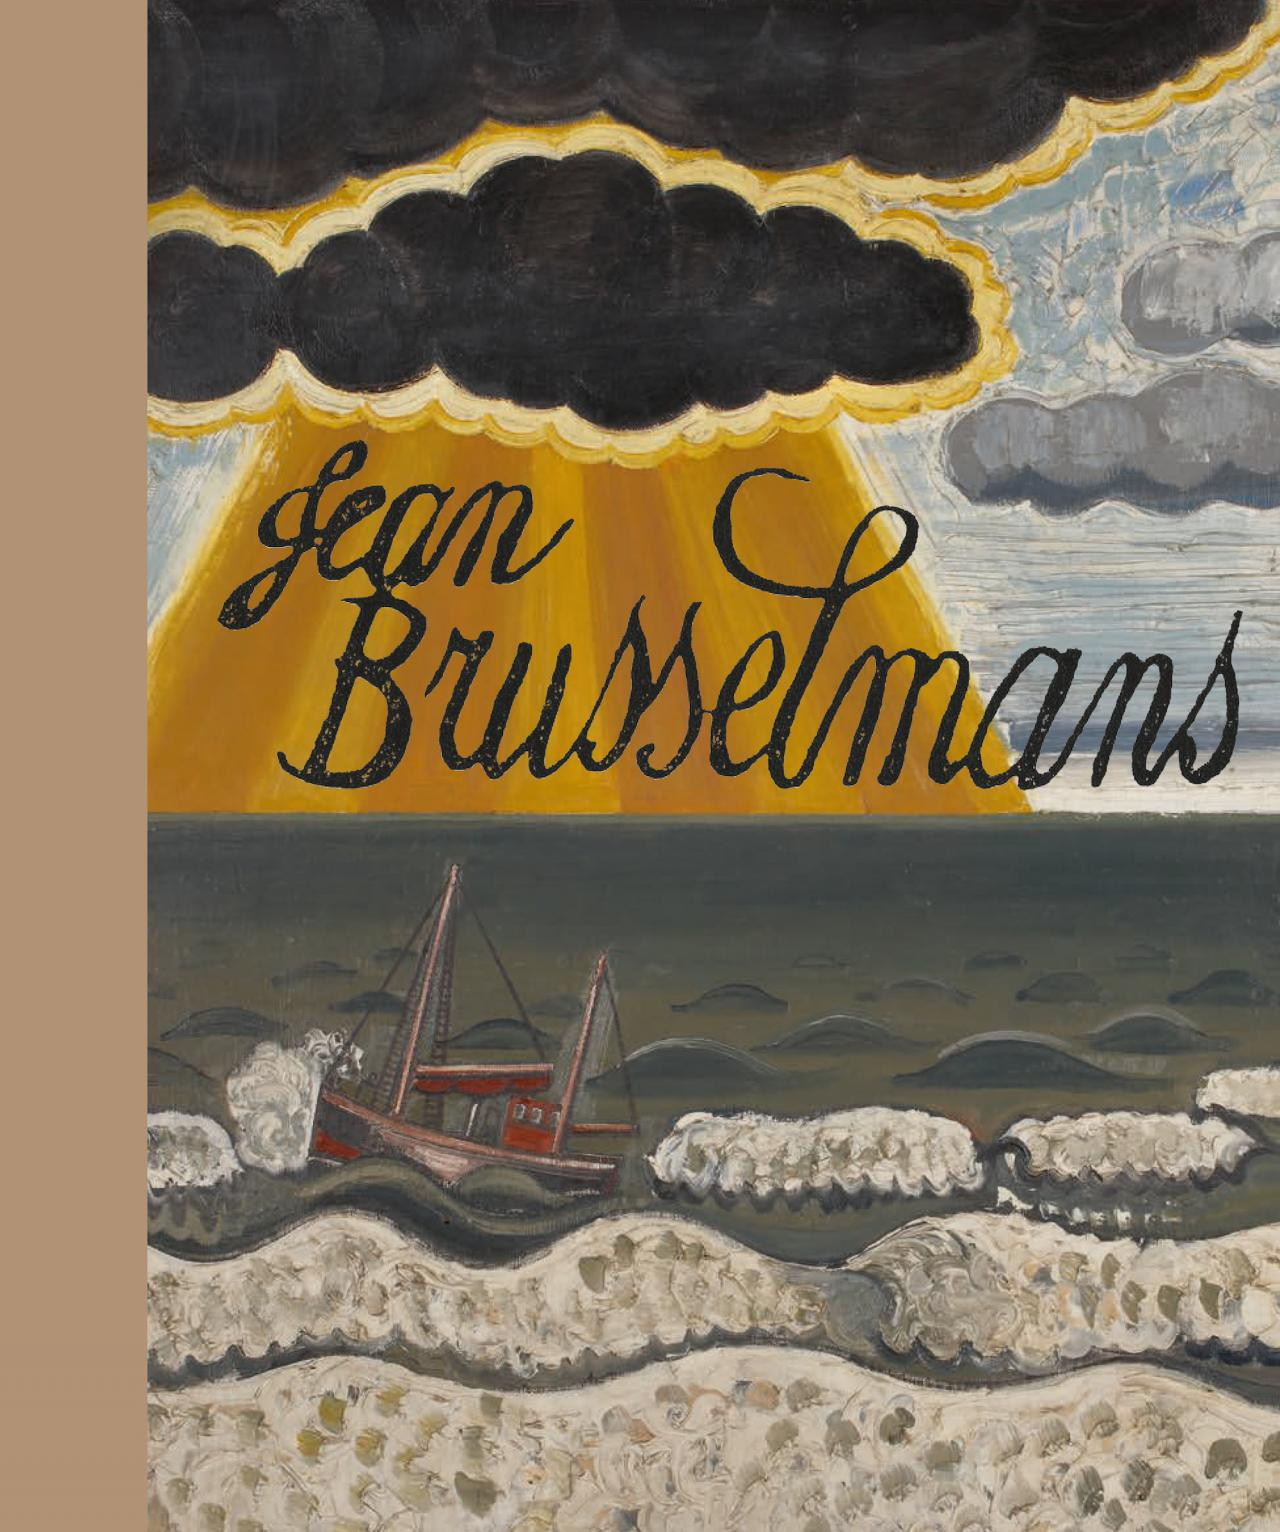 Jean Brusselmans: Survey publication